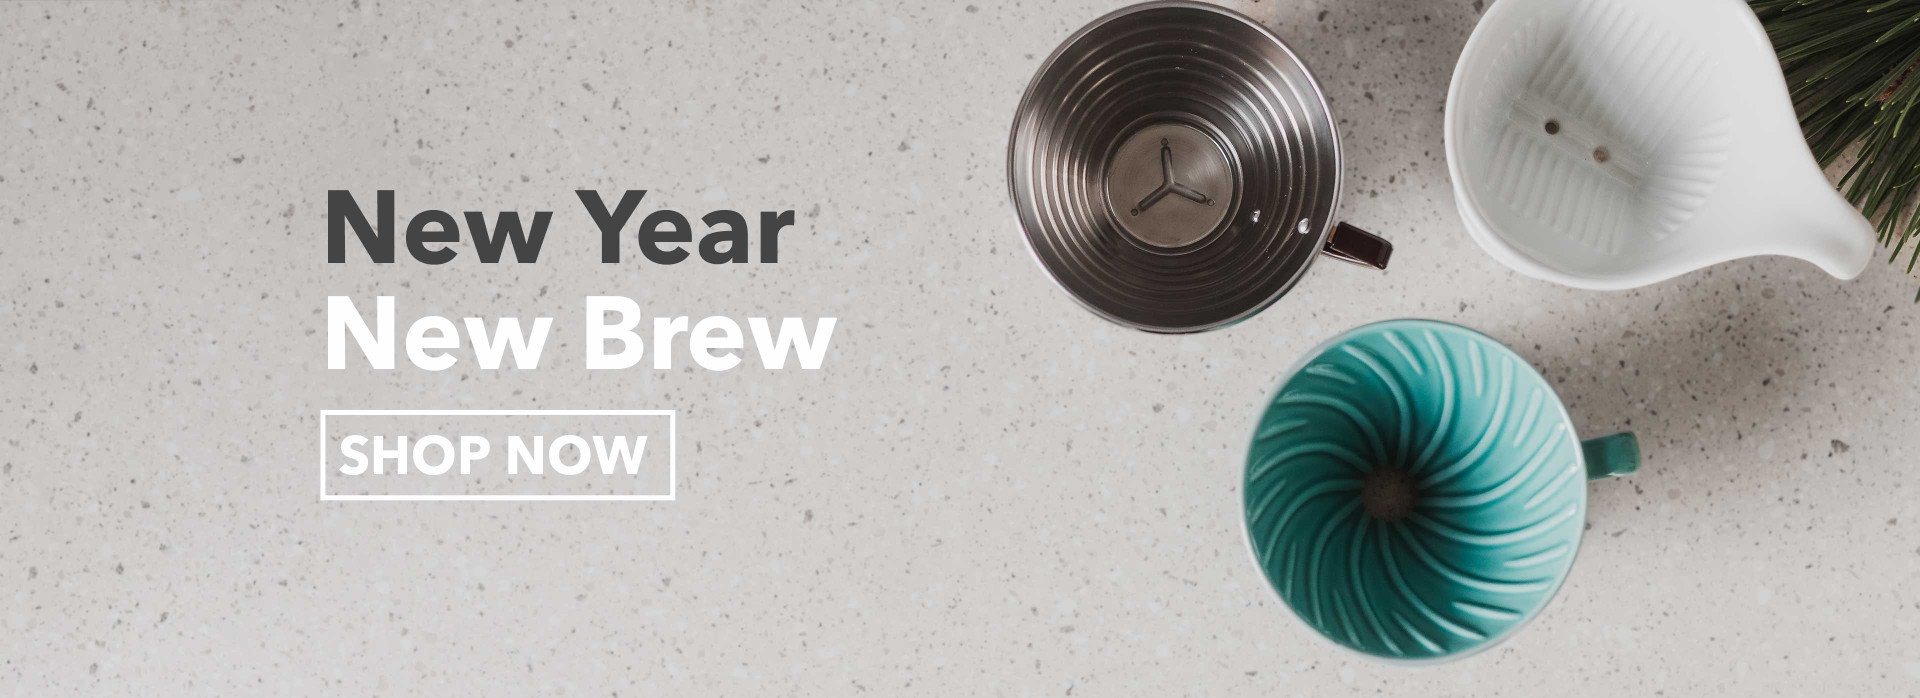 New Year, New Brew, shop pour over